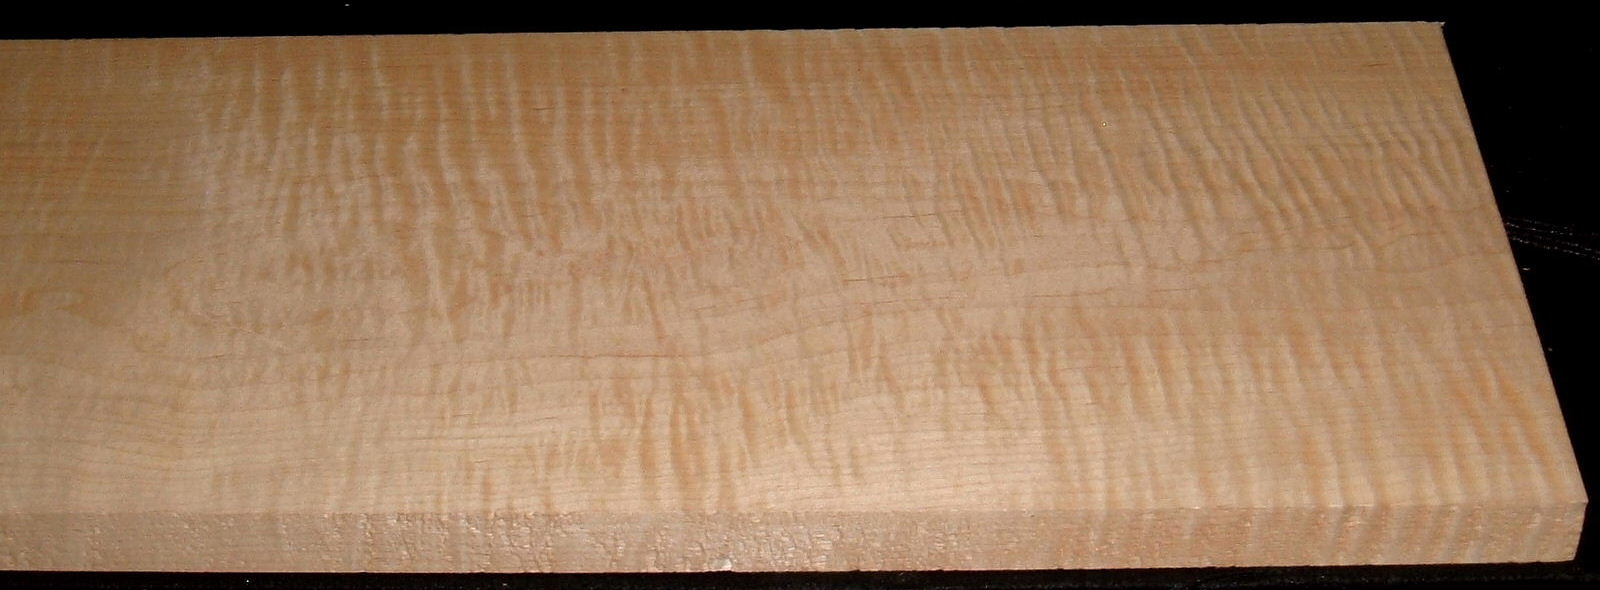 M2007-571, 1-3/16x11-1/4x48, Curly Tiger Maple